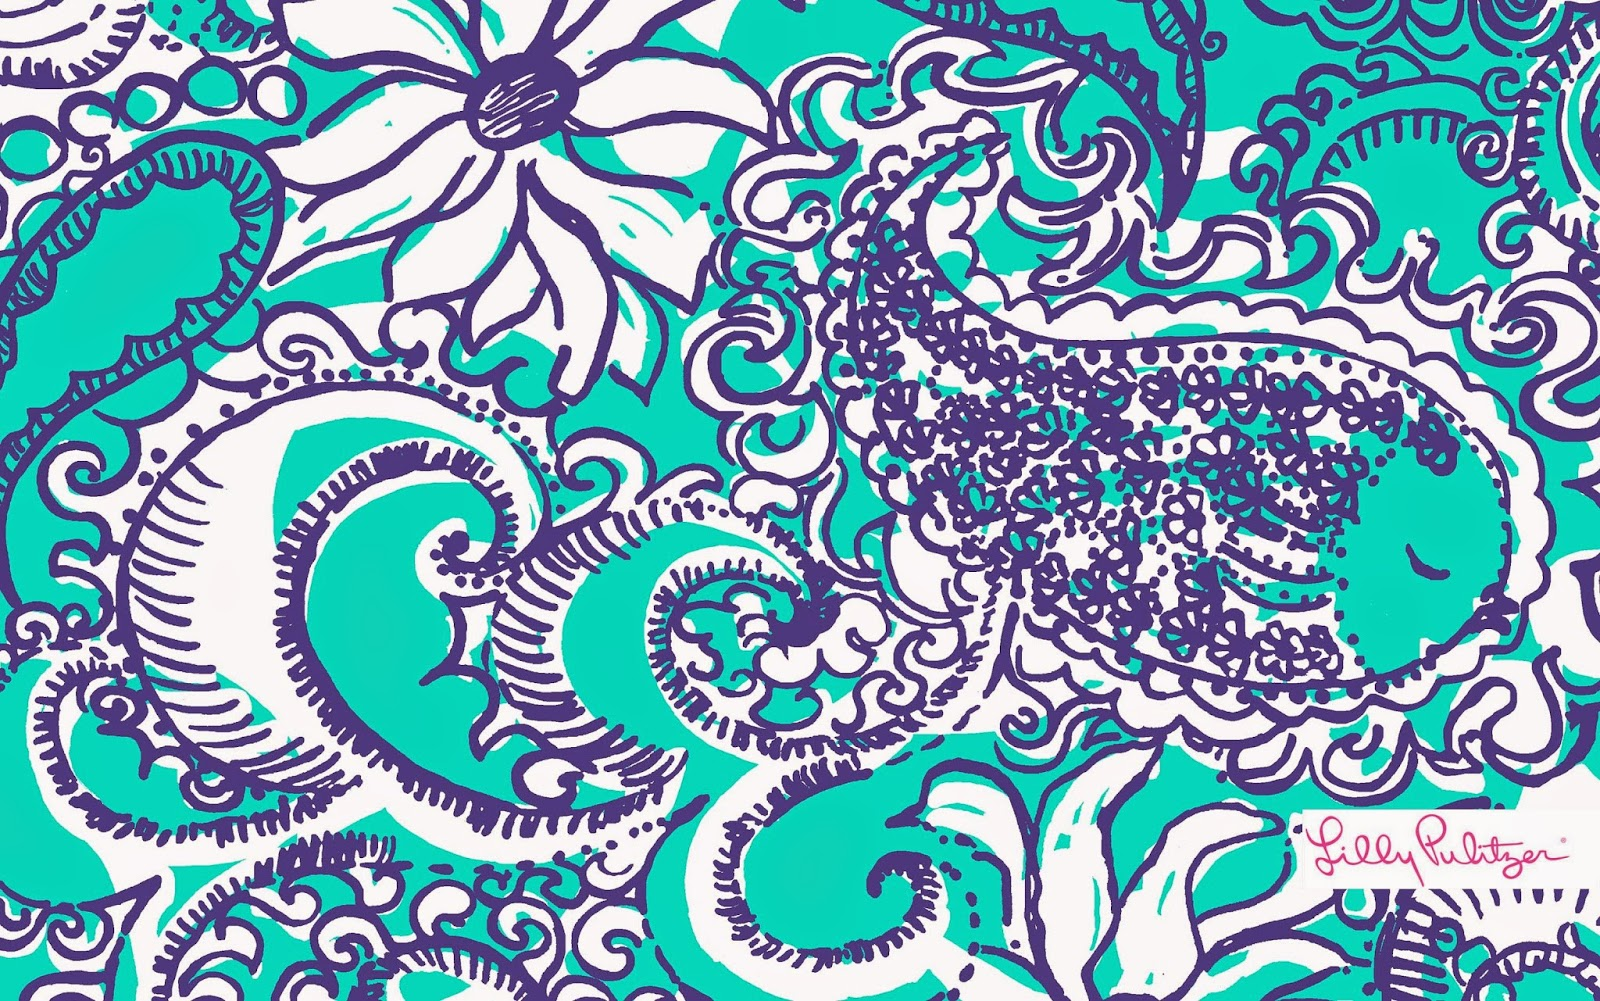 monogram lilly pulitzer desktop wallpaper wallpapersafari. Black Bedroom Furniture Sets. Home Design Ideas